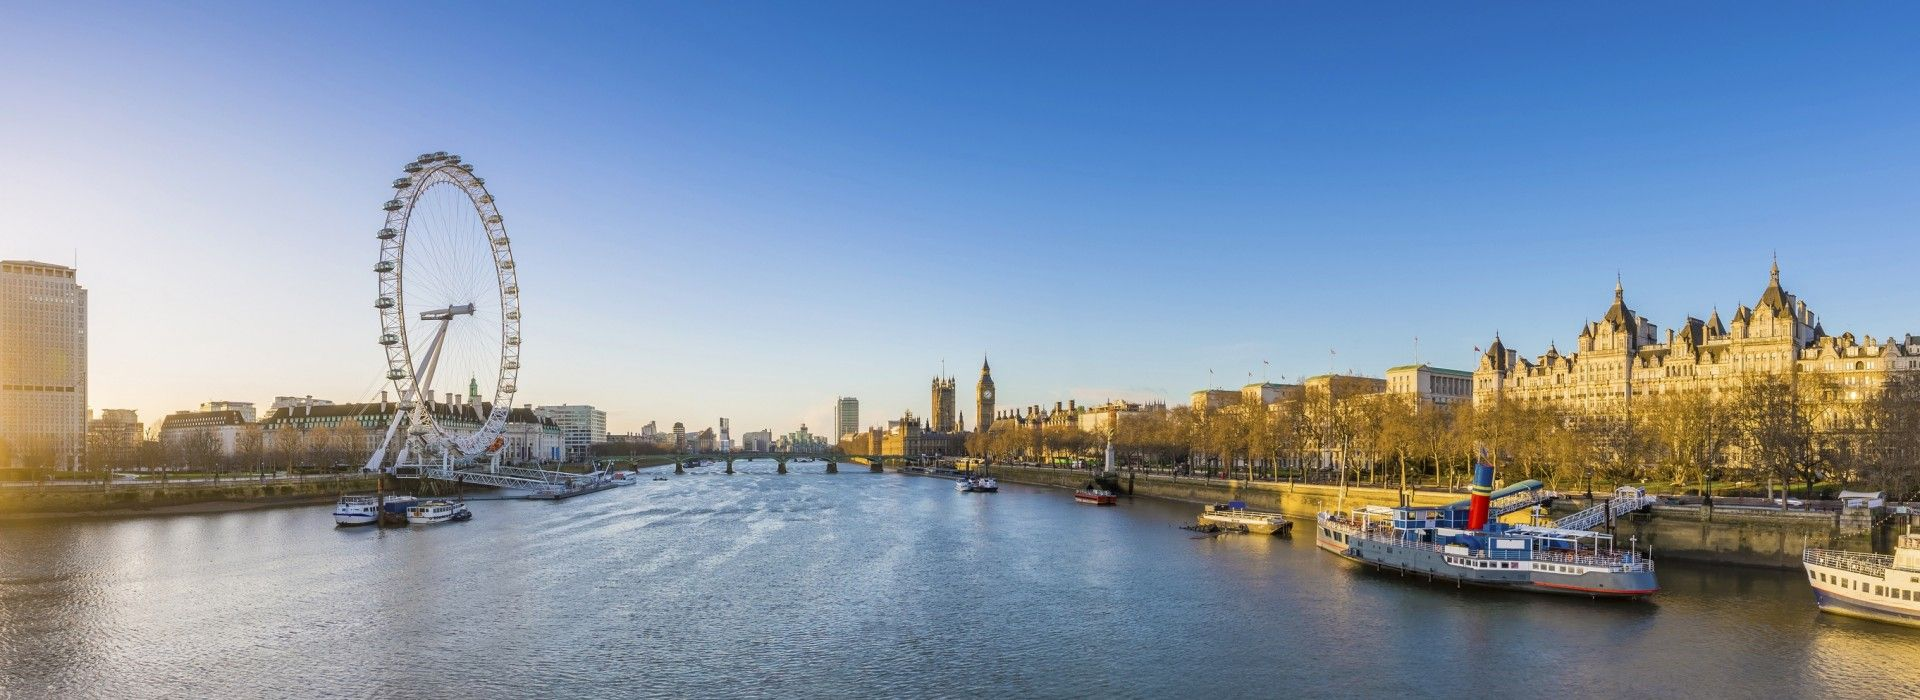 Beer and drinks tasting Tours in London